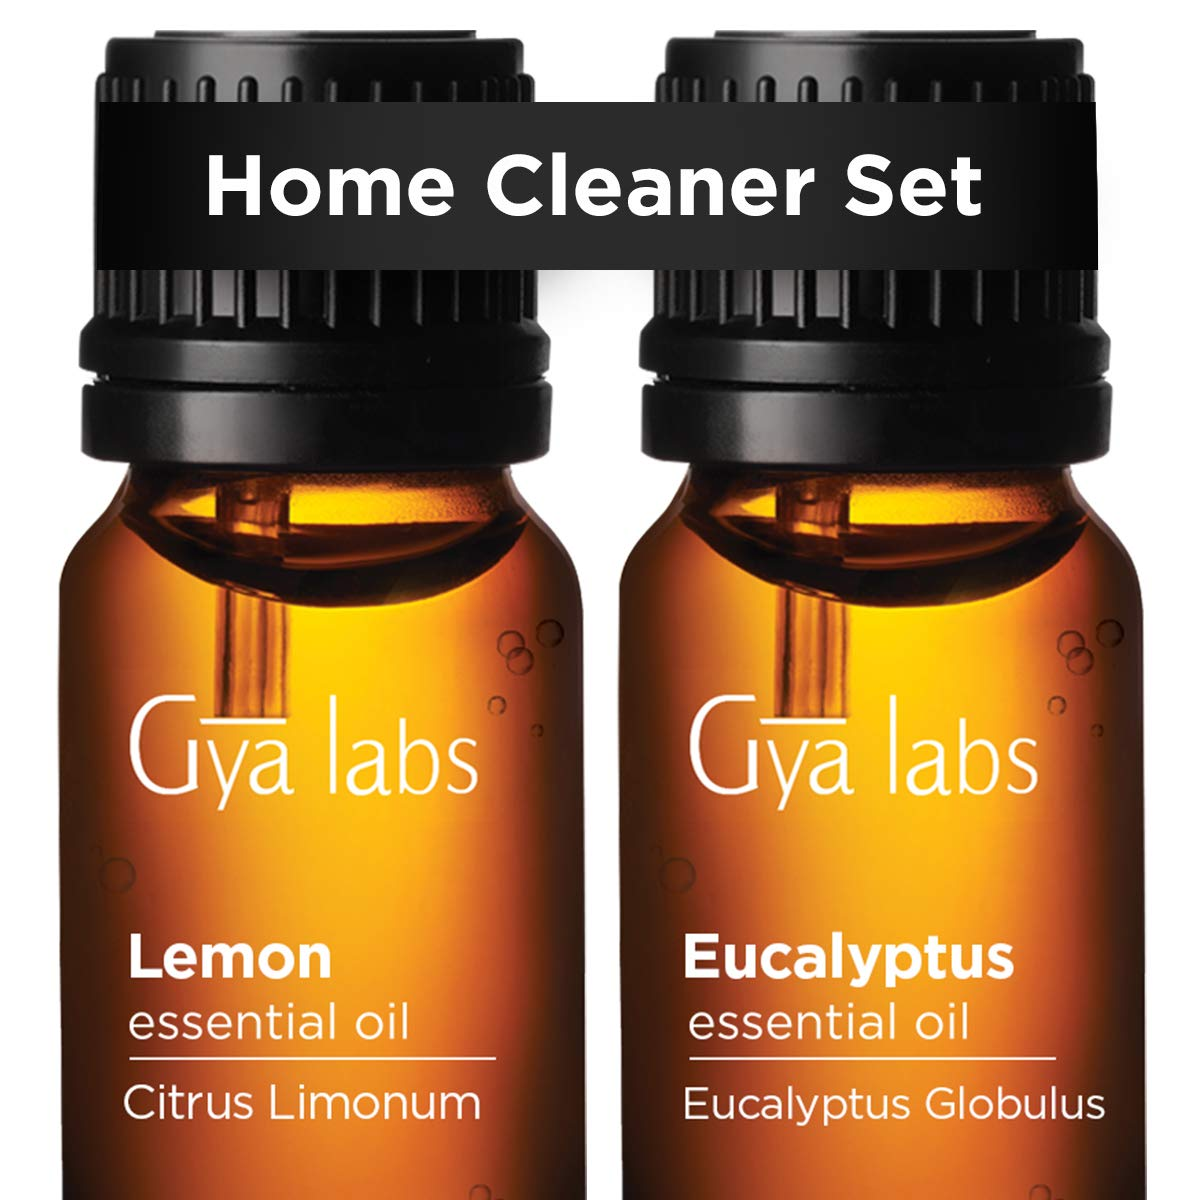 Lemon Oil & Eucalyptus Oil - Gya Labs Home Cleaner Set for Clean & Safe Homes - 100% Pure Therapeutic Grade Essential Oils Set - 2x10ml